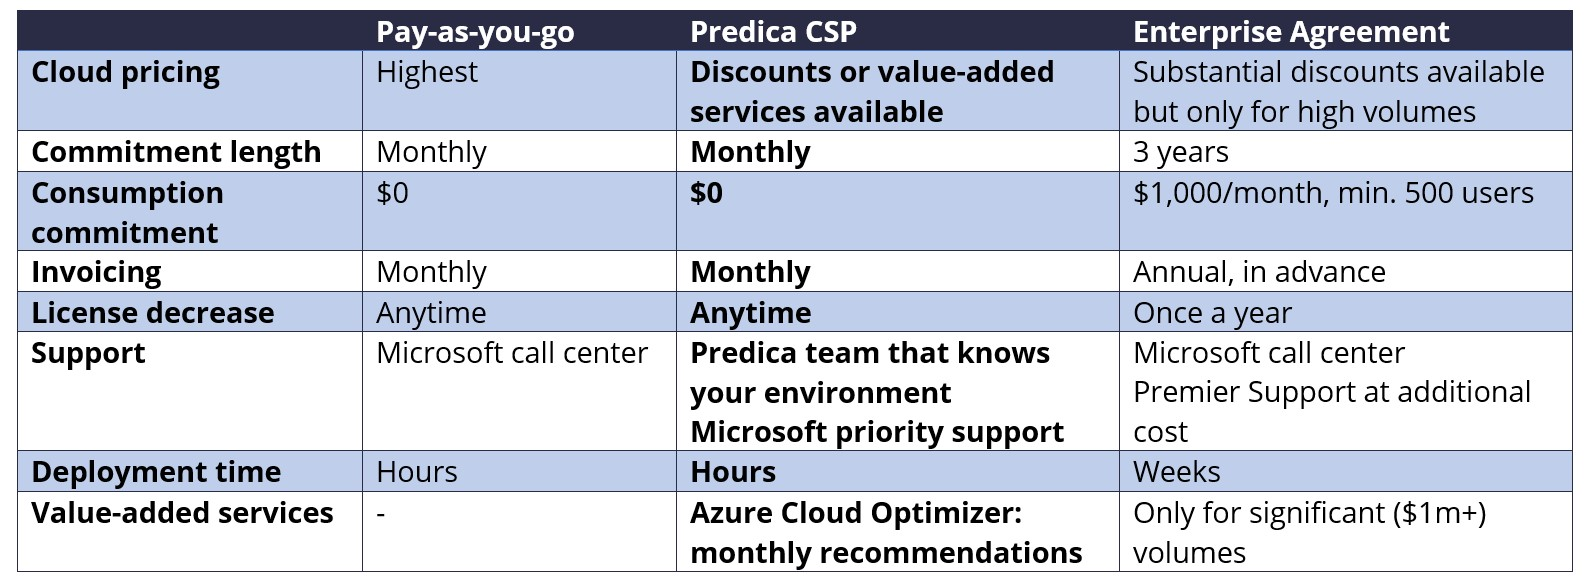 Difference between buying the cloud via PAYG, Predica CSP and EA